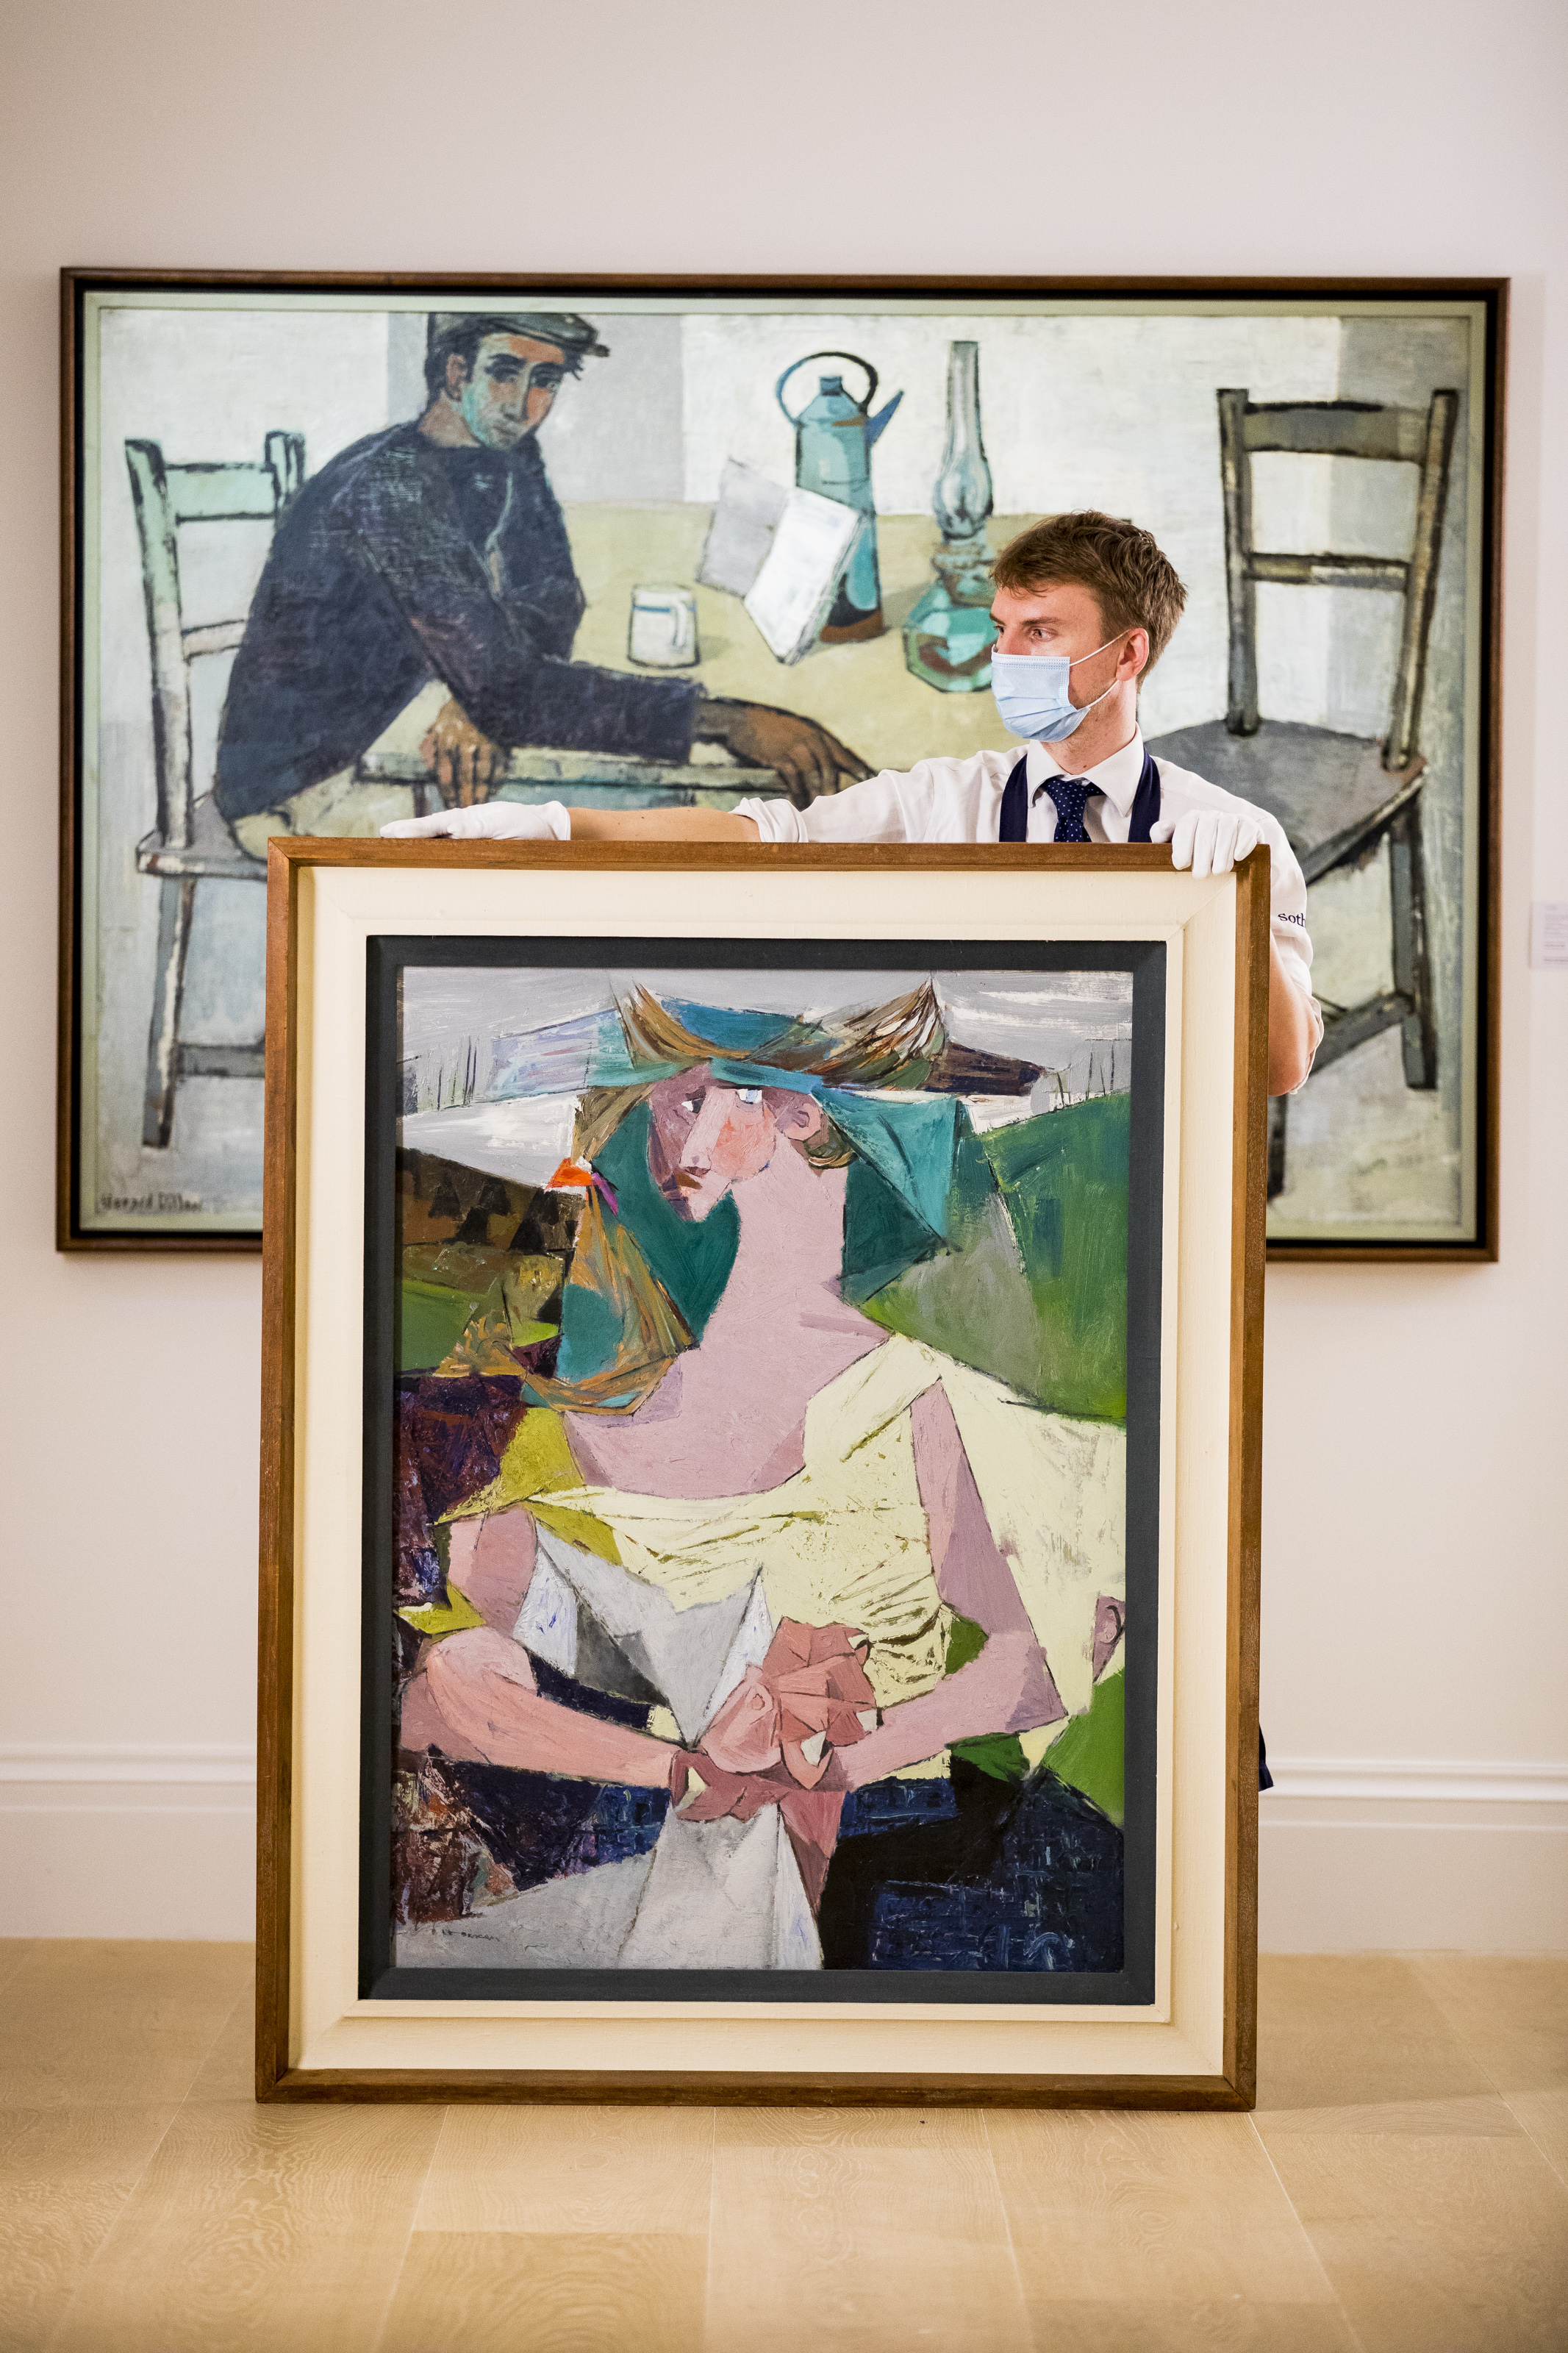 """Louis le Brocquy's """"Travelling Woman with Newspaper"""", Sotheby's Irish Art Pre-Sale Exhibition, London England September 4, 2020"""